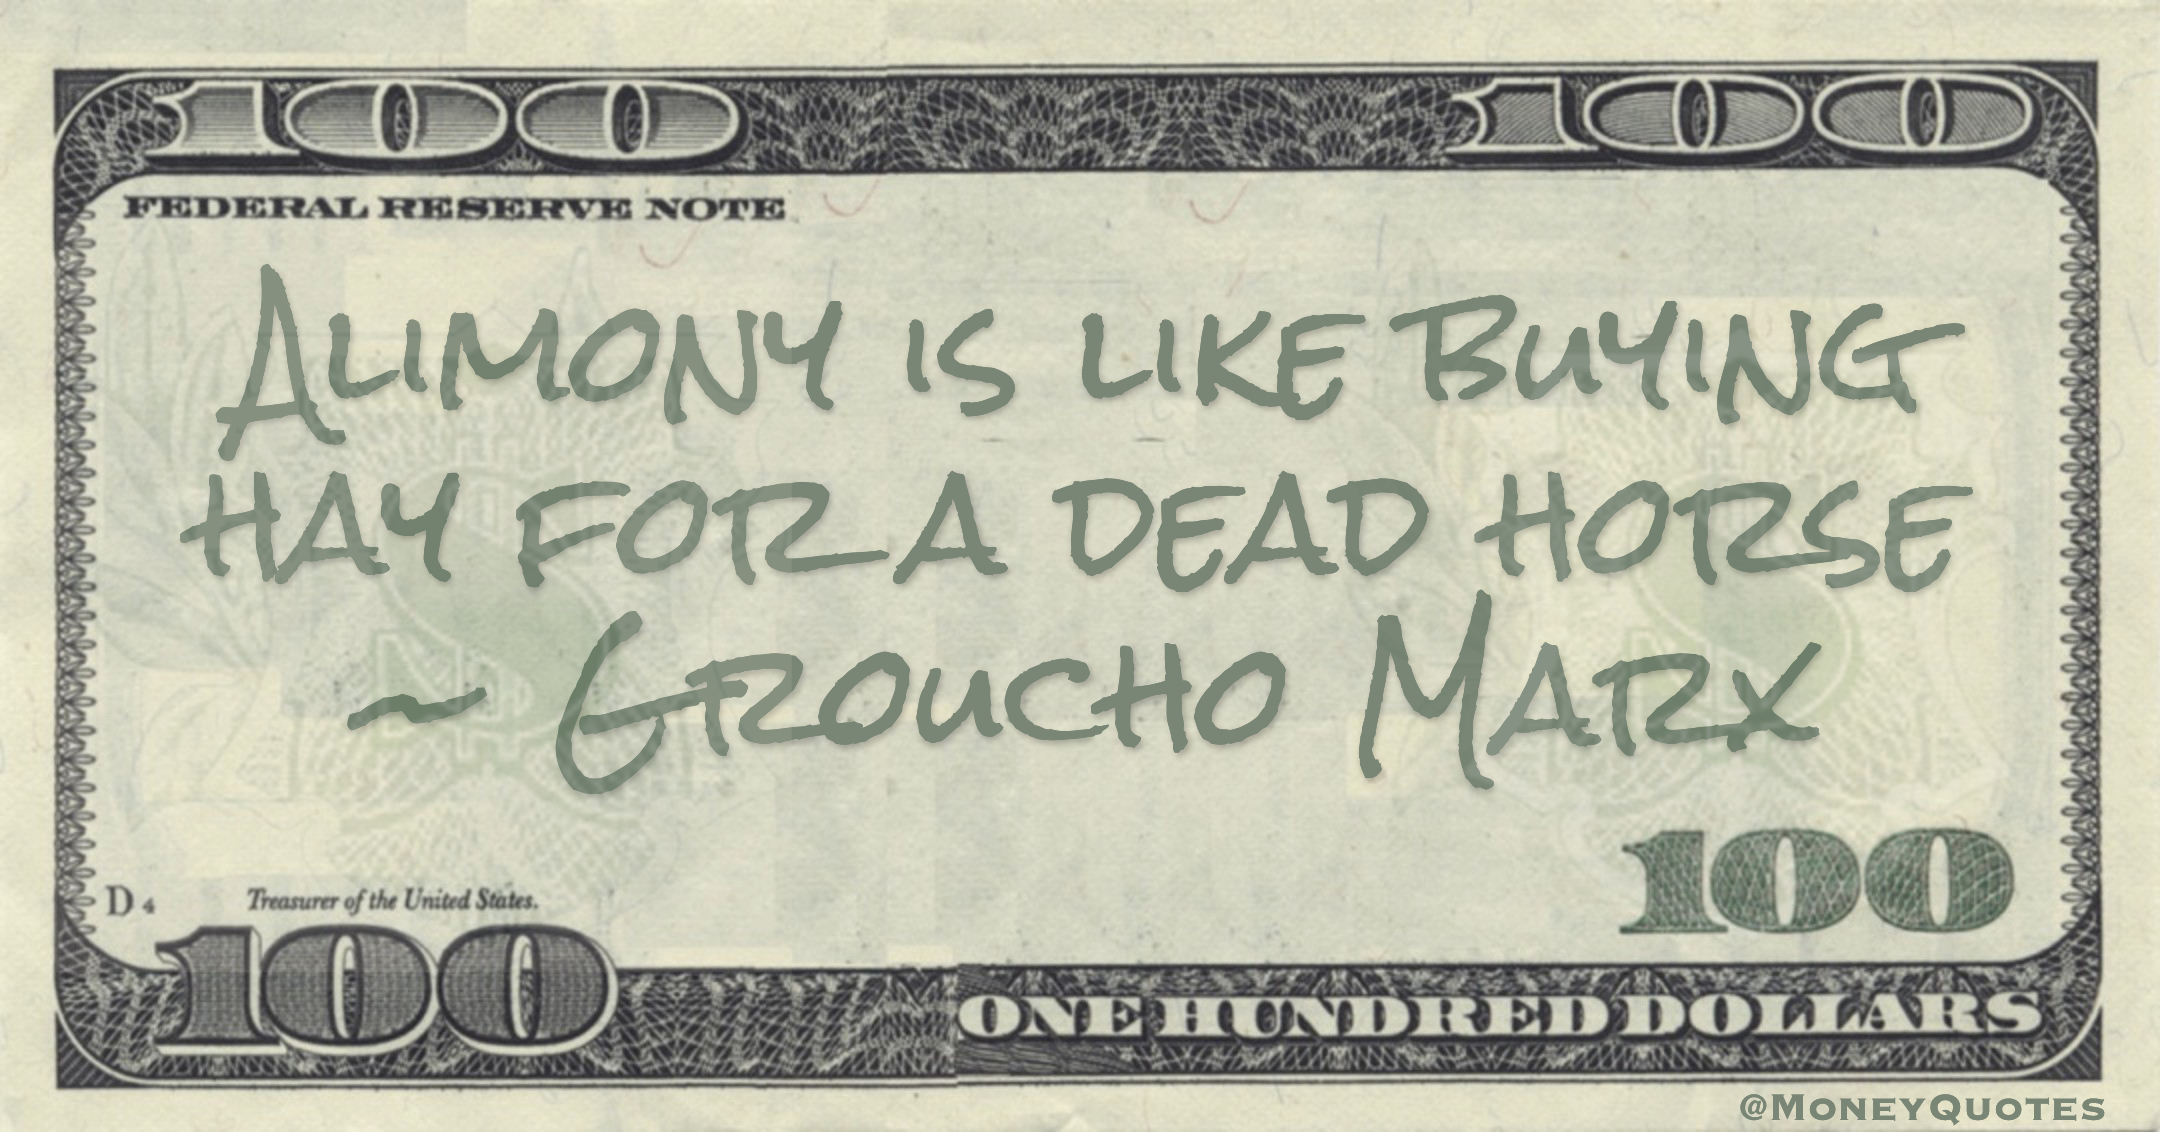 Alimony is like buying hay for a dead horse Quote